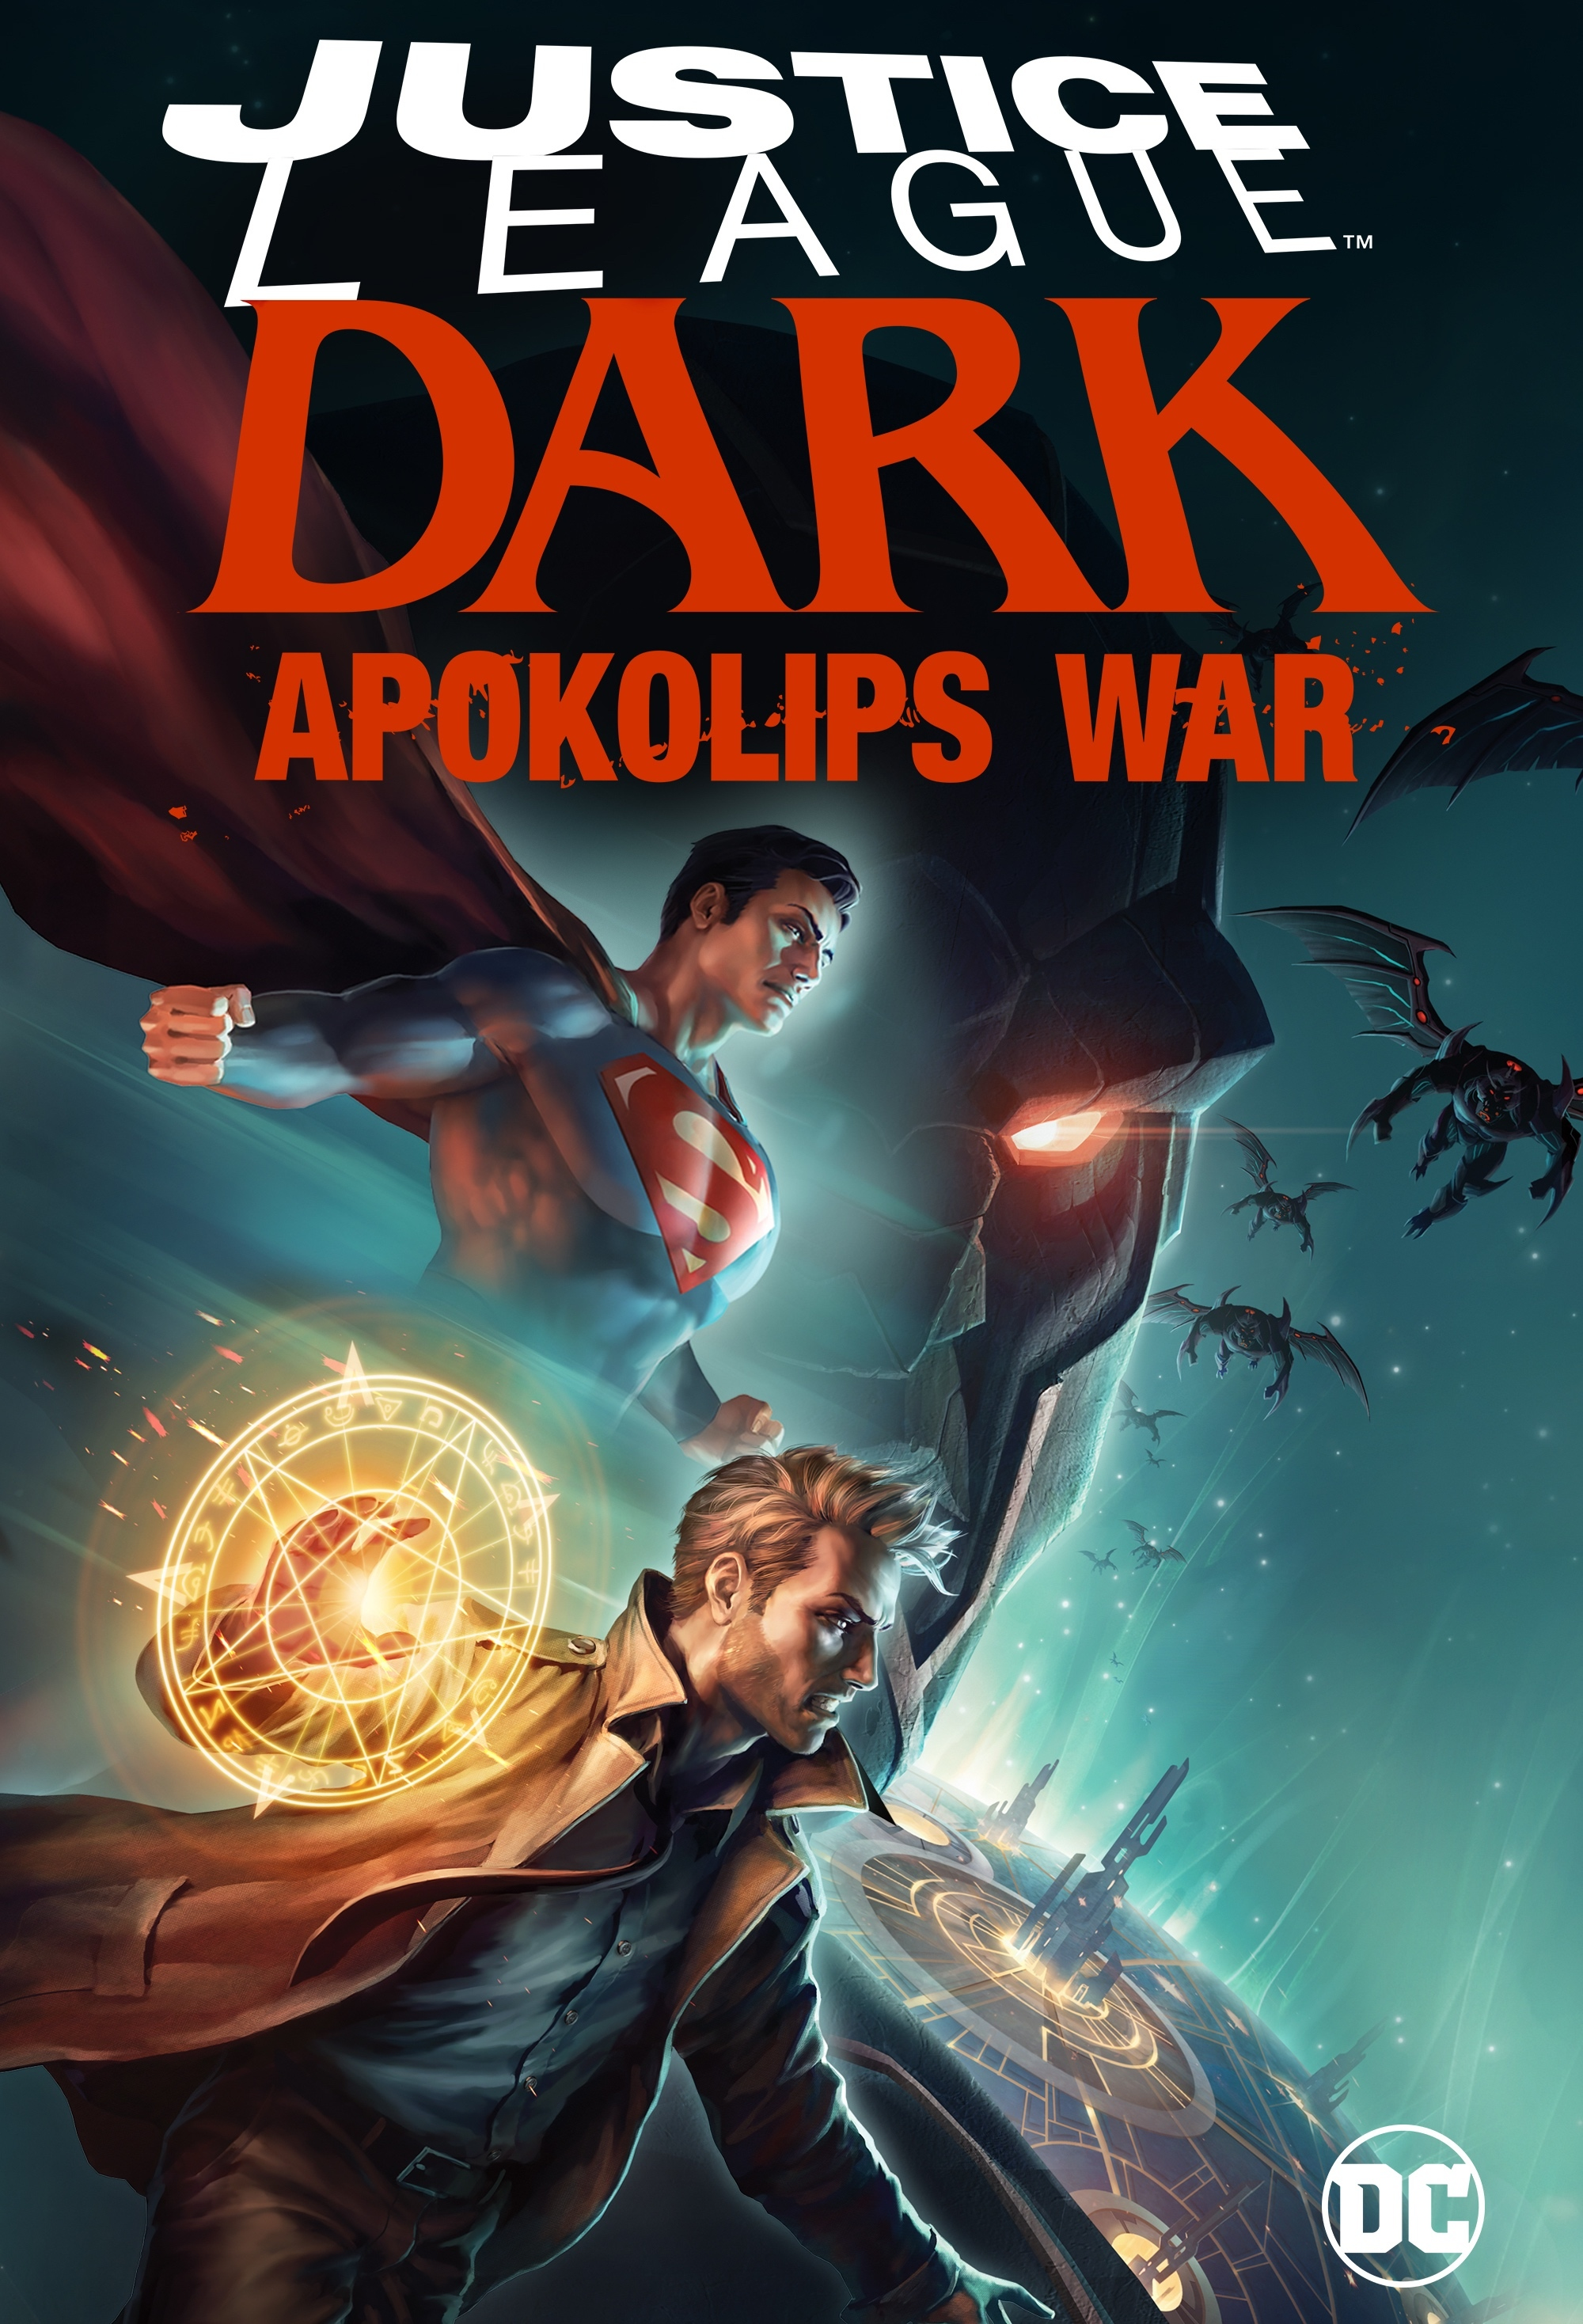 Justice League Dark: Apokolips War (Video 2020) - IMDb